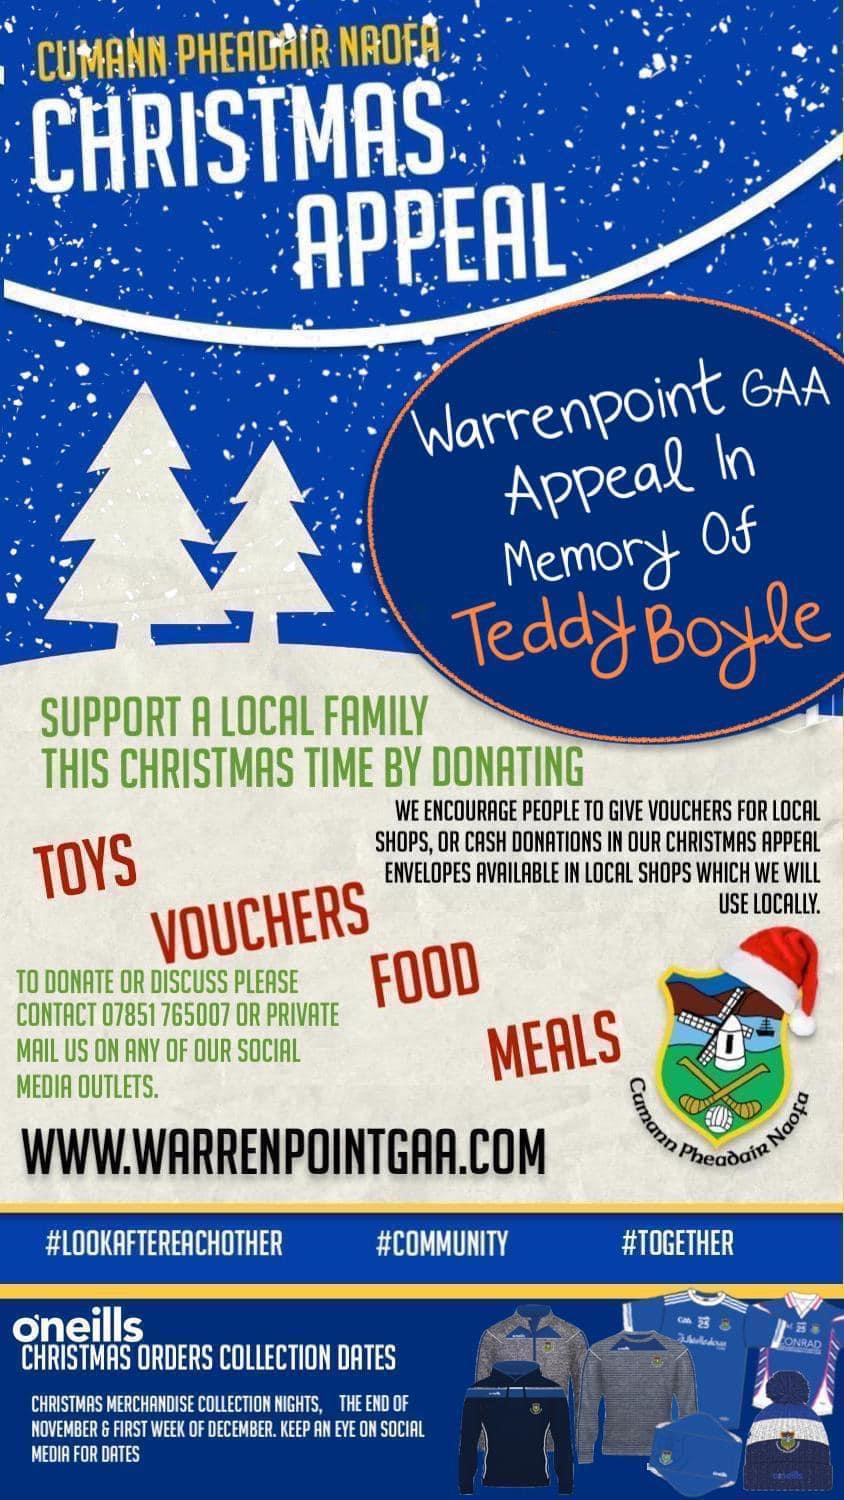 Warrenpoint GAA Christmas Appeal